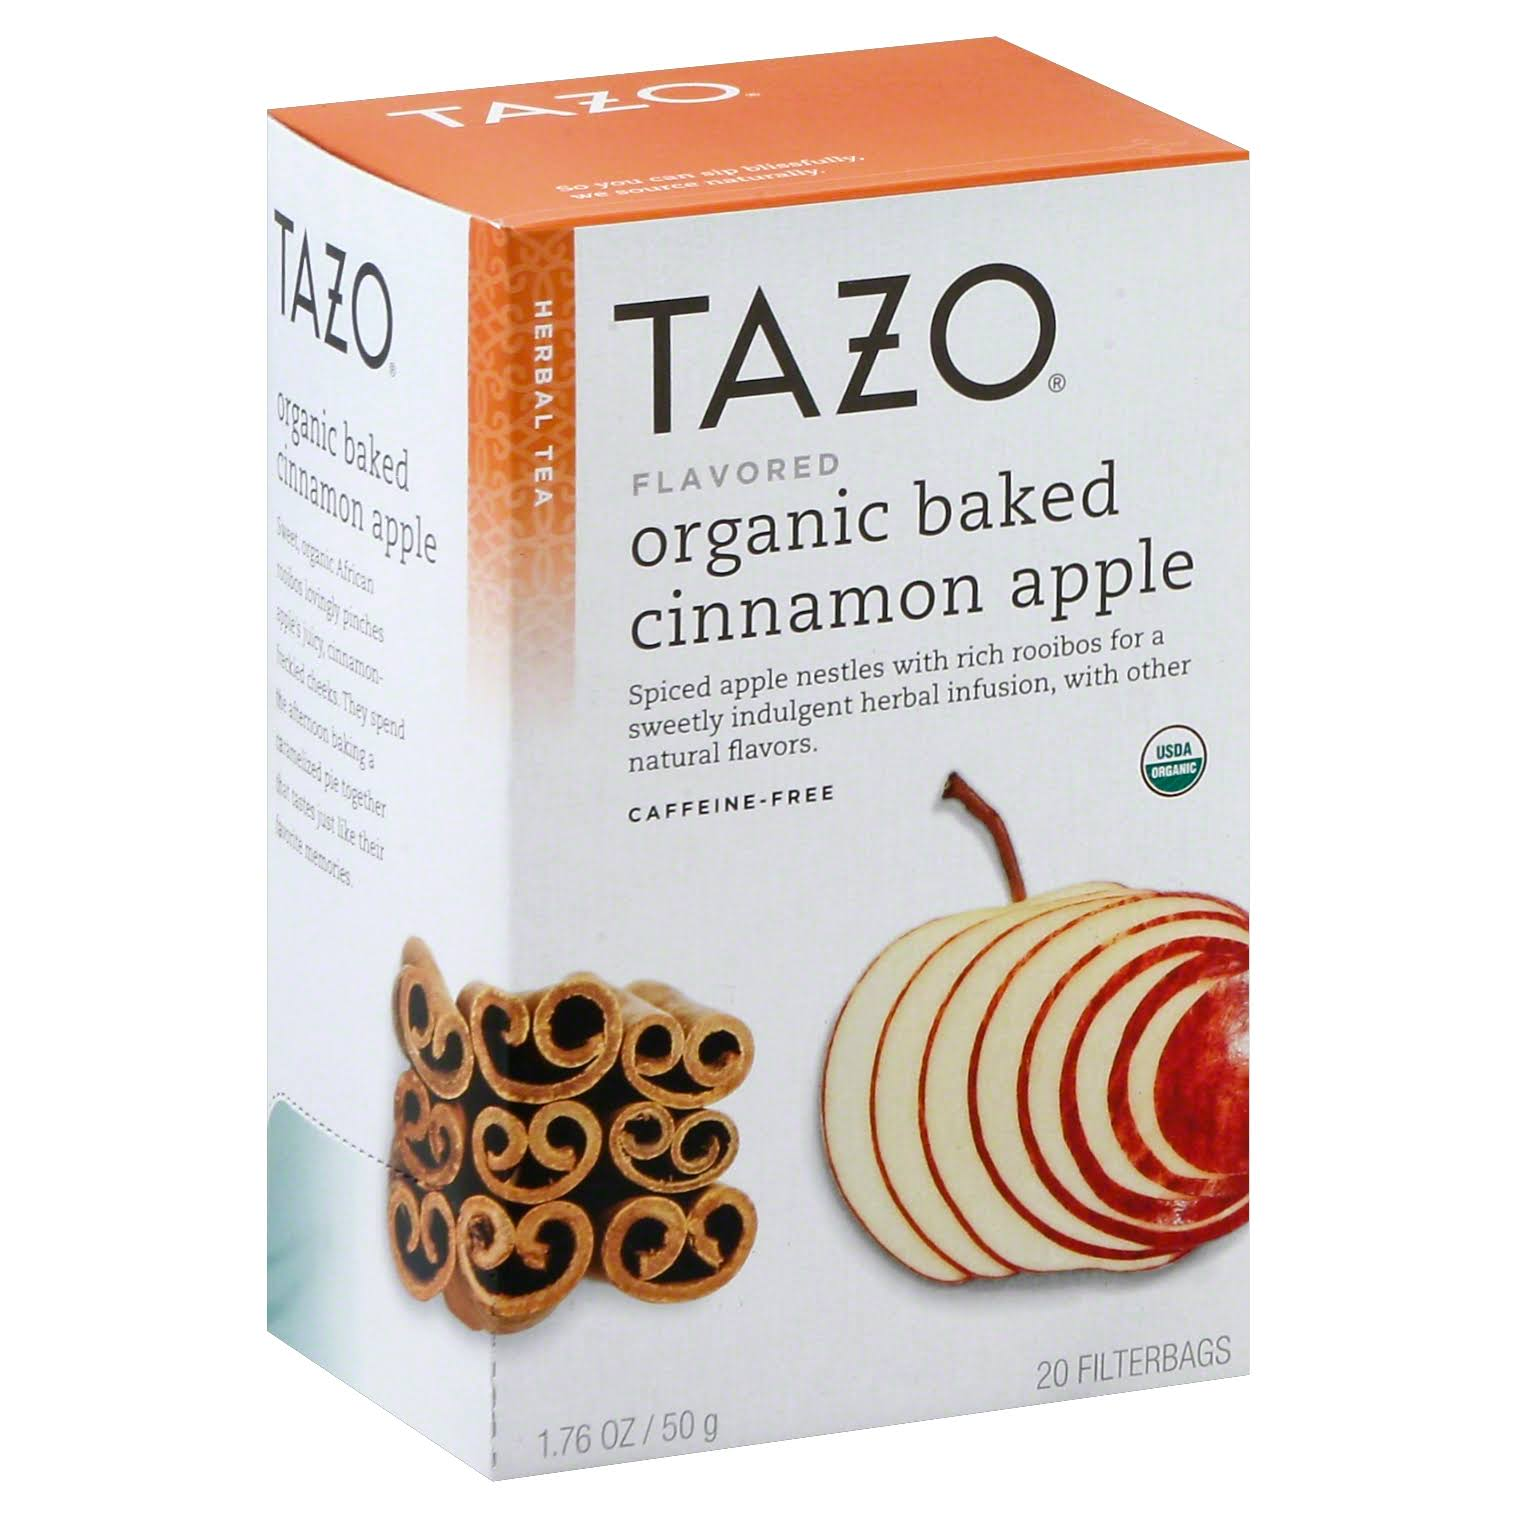 Tazo Flavored Herbal Tea Filterbags - Organic Baked Cinnamon Apple, 1.76oz, 20ct